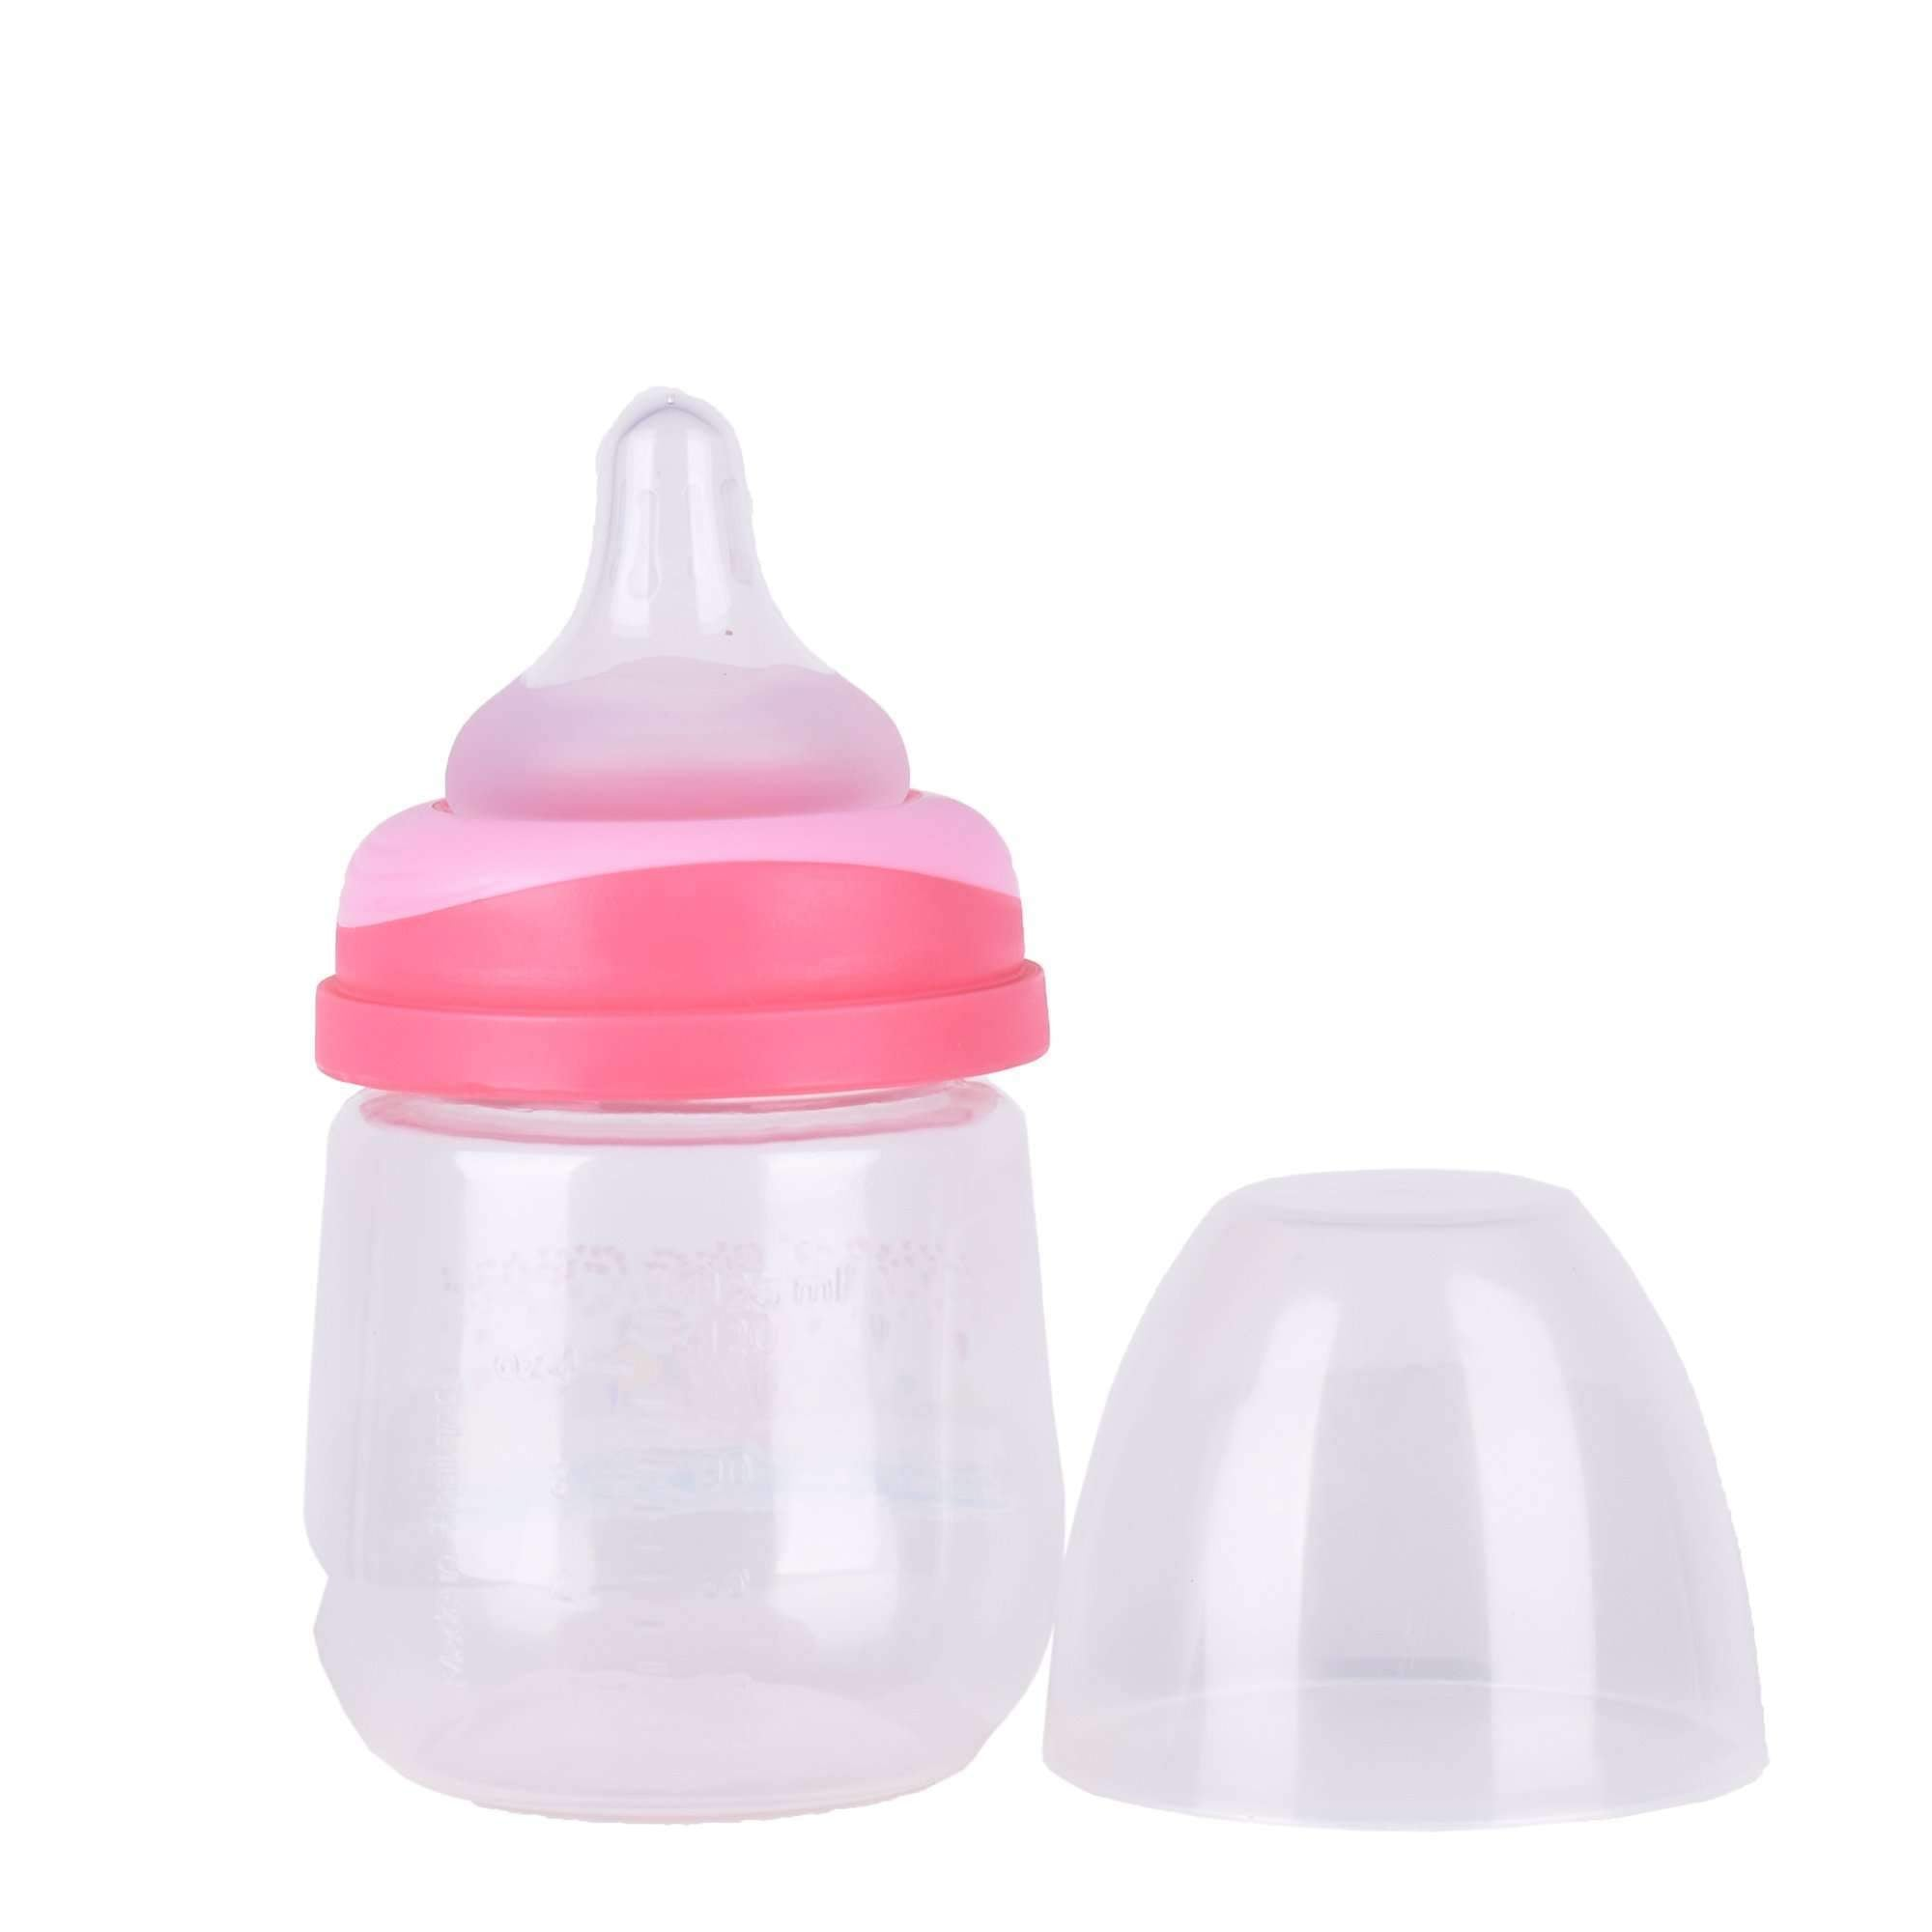 Baby KIKO 4oz  Wide Neck Bottle 3500-020 : Buy Baby KIKO online at CMG.MY